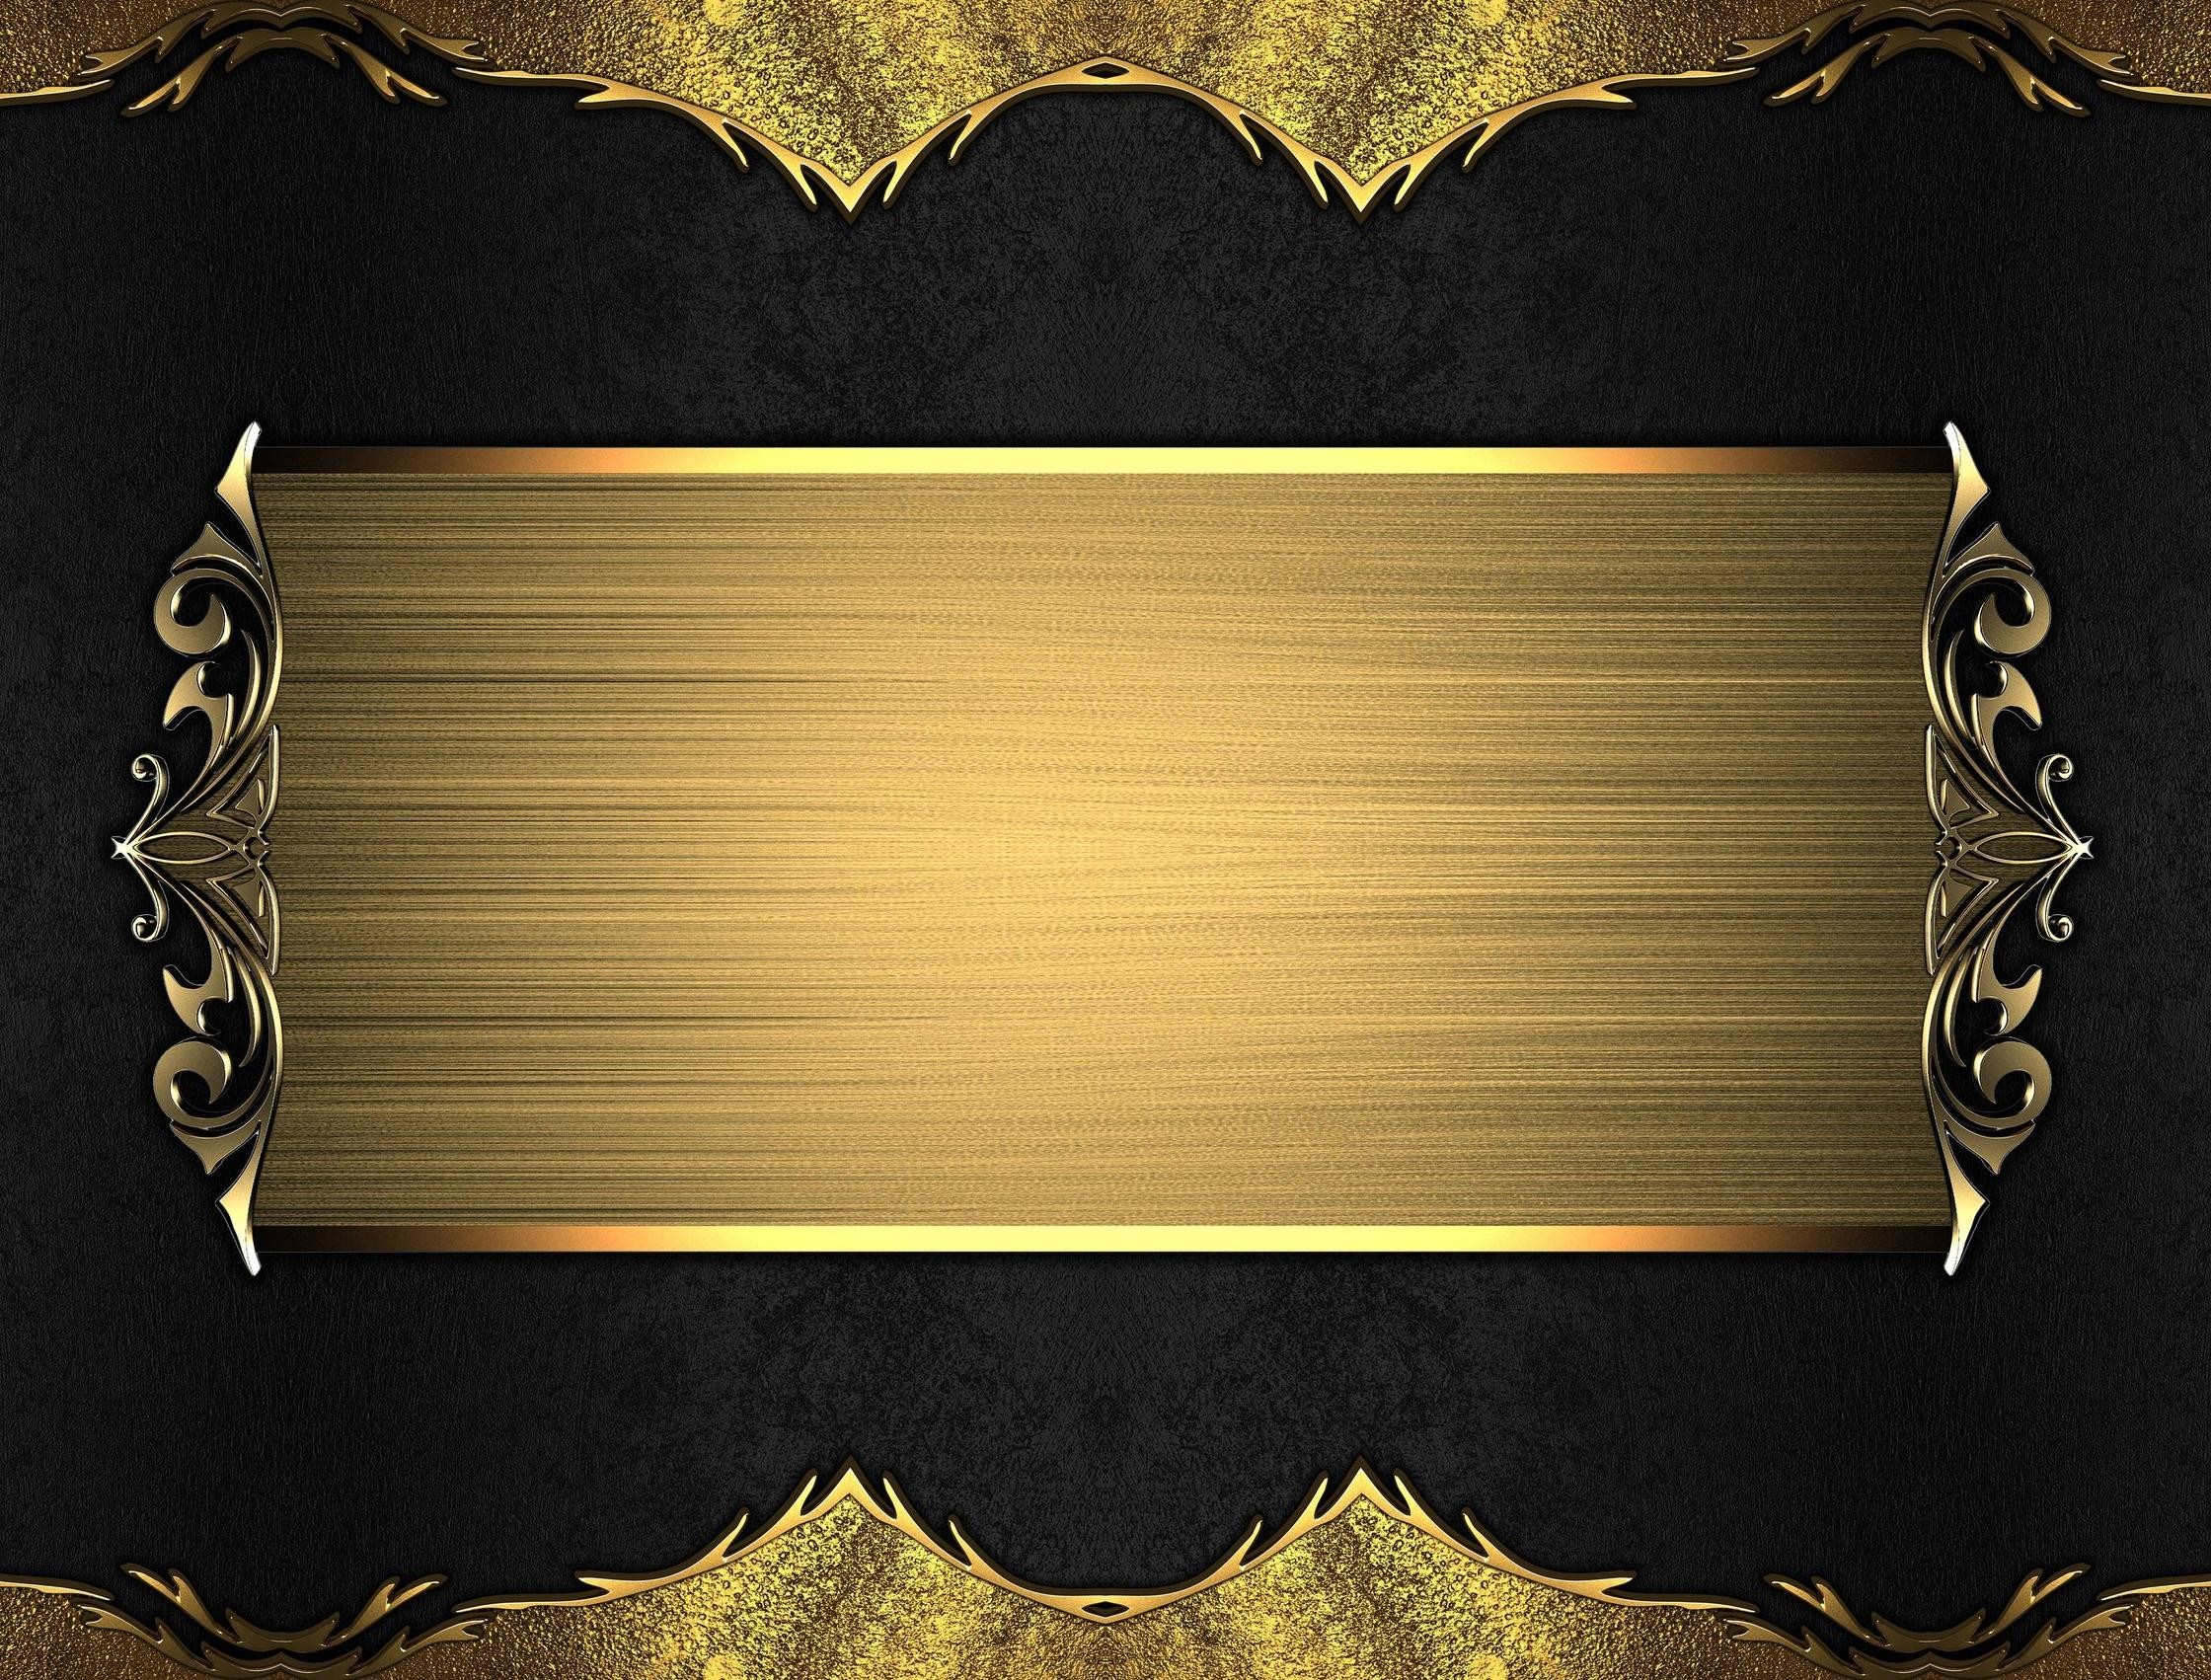 Gold And Black Backgrounds 183 ①